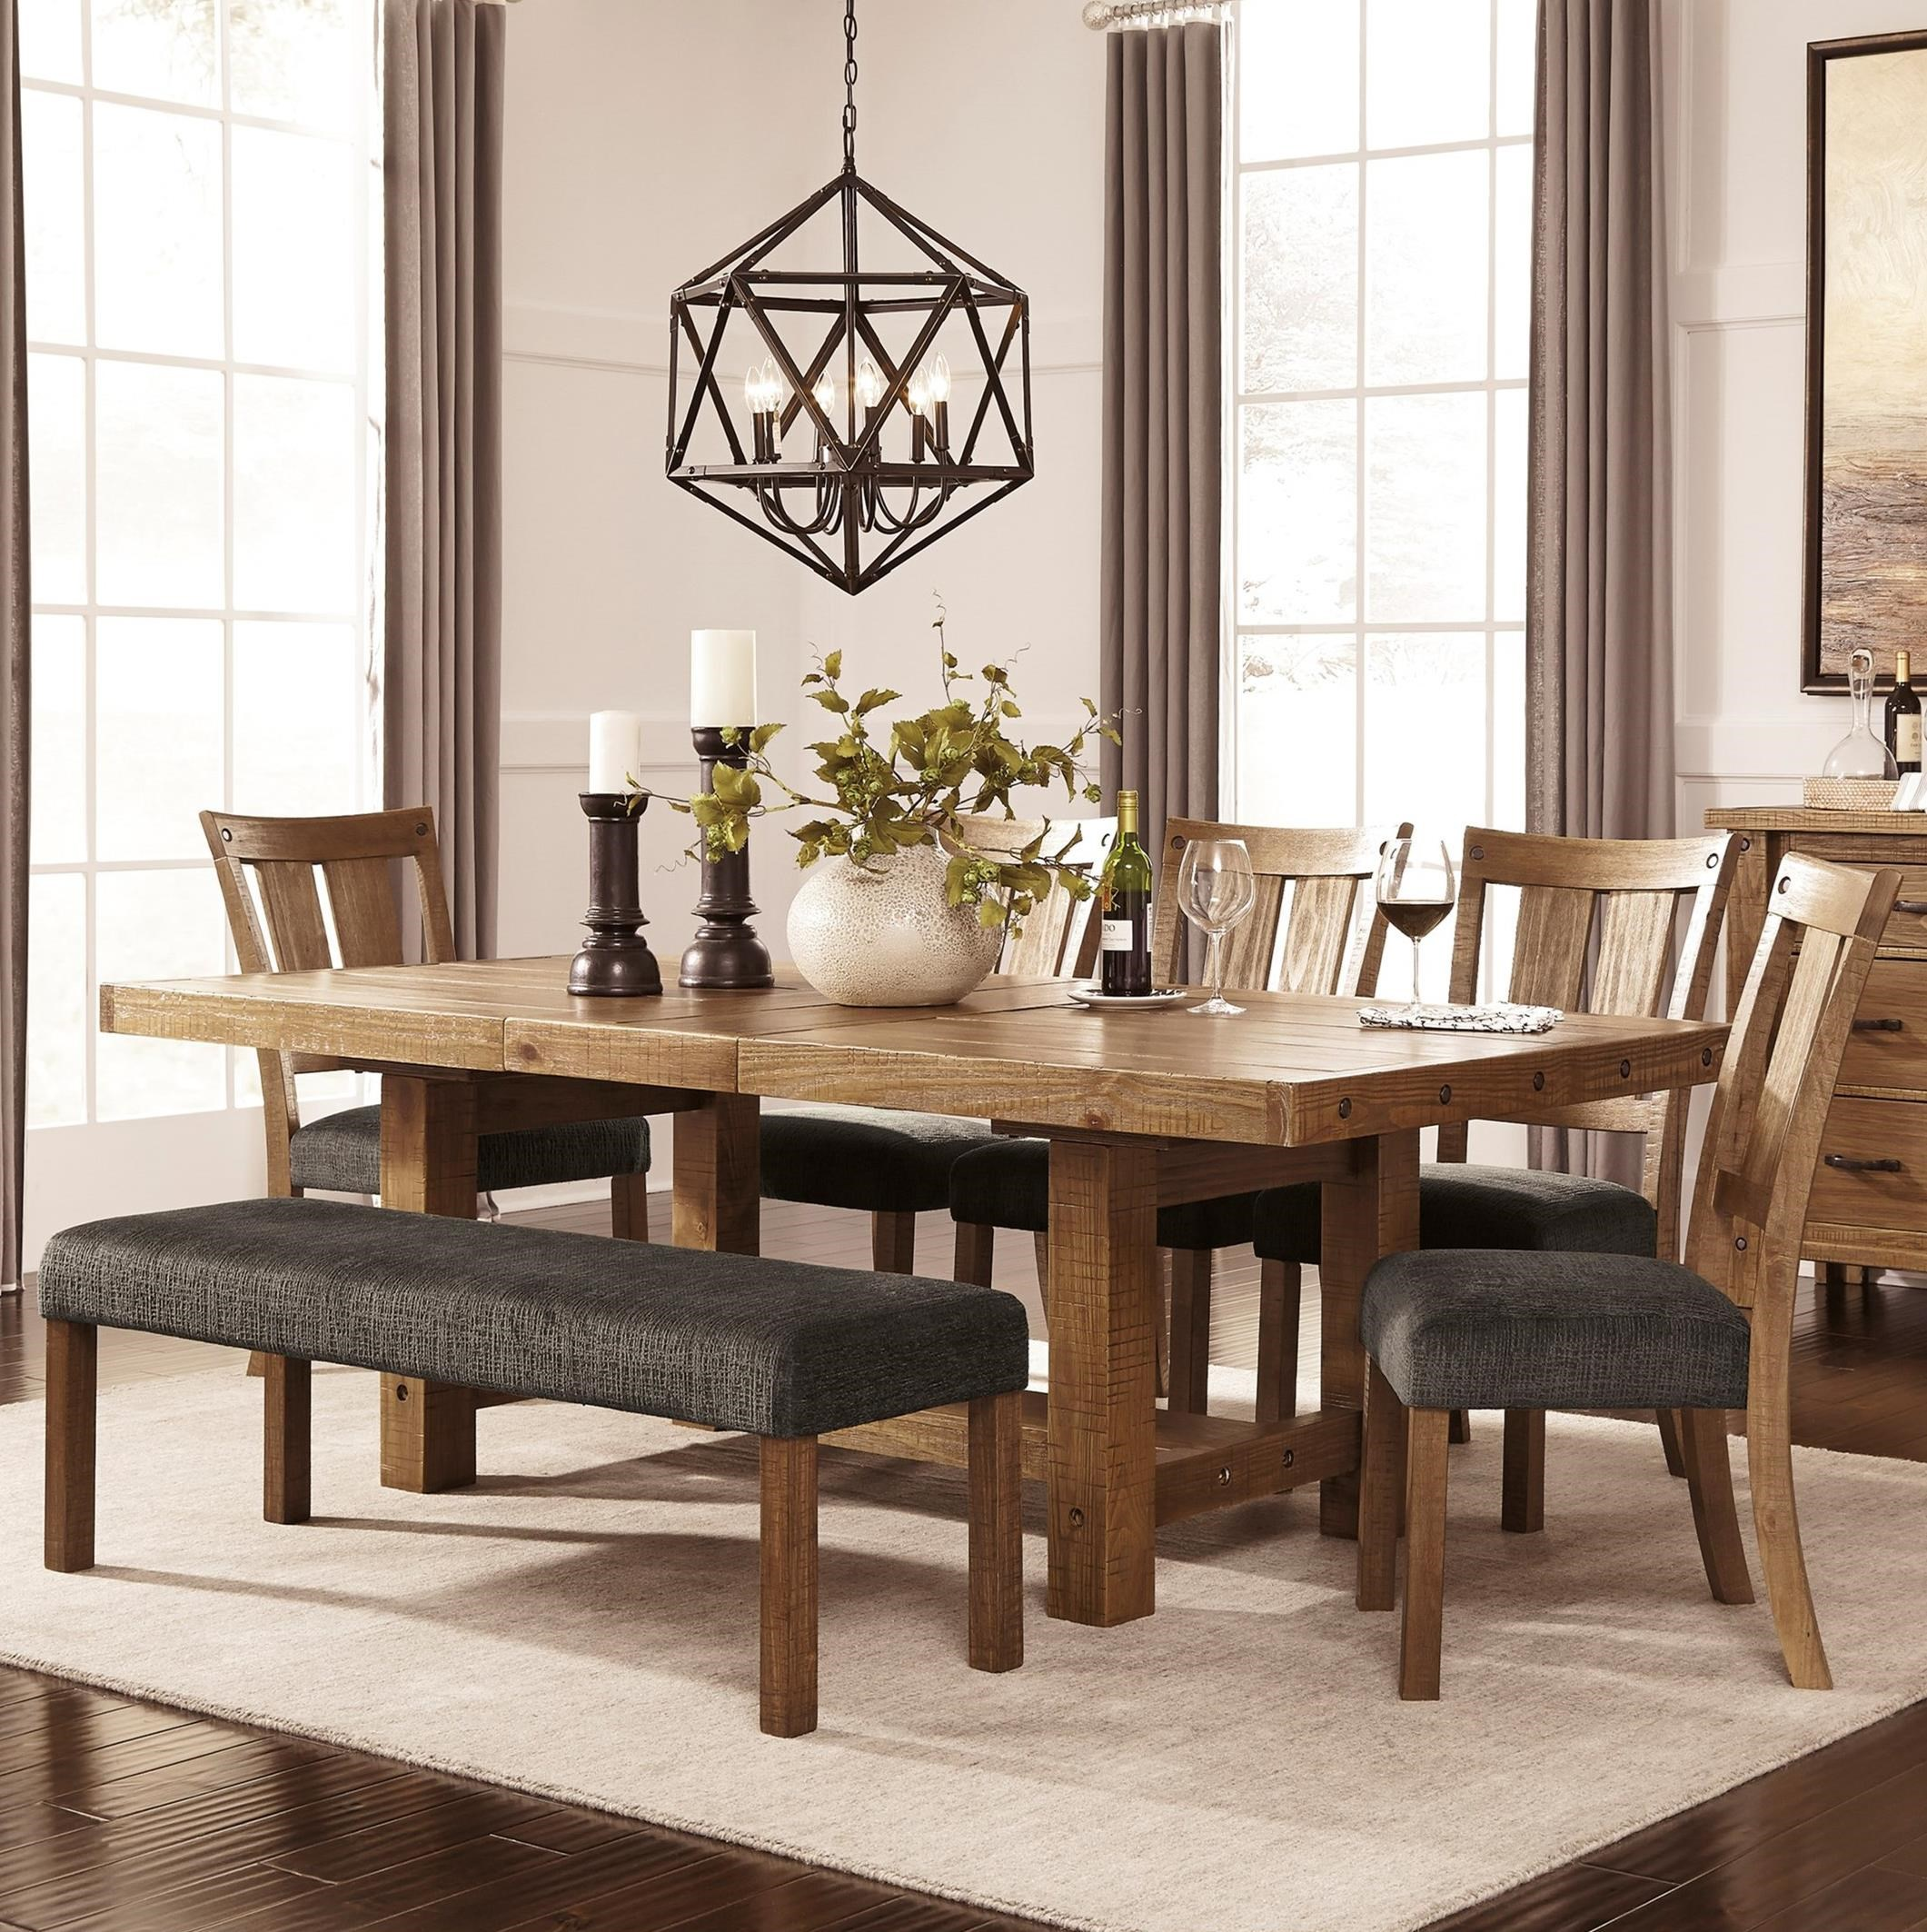 Ashley Dining Room Set: 7 Piece Table & Chair Set With Bench By Signature Design